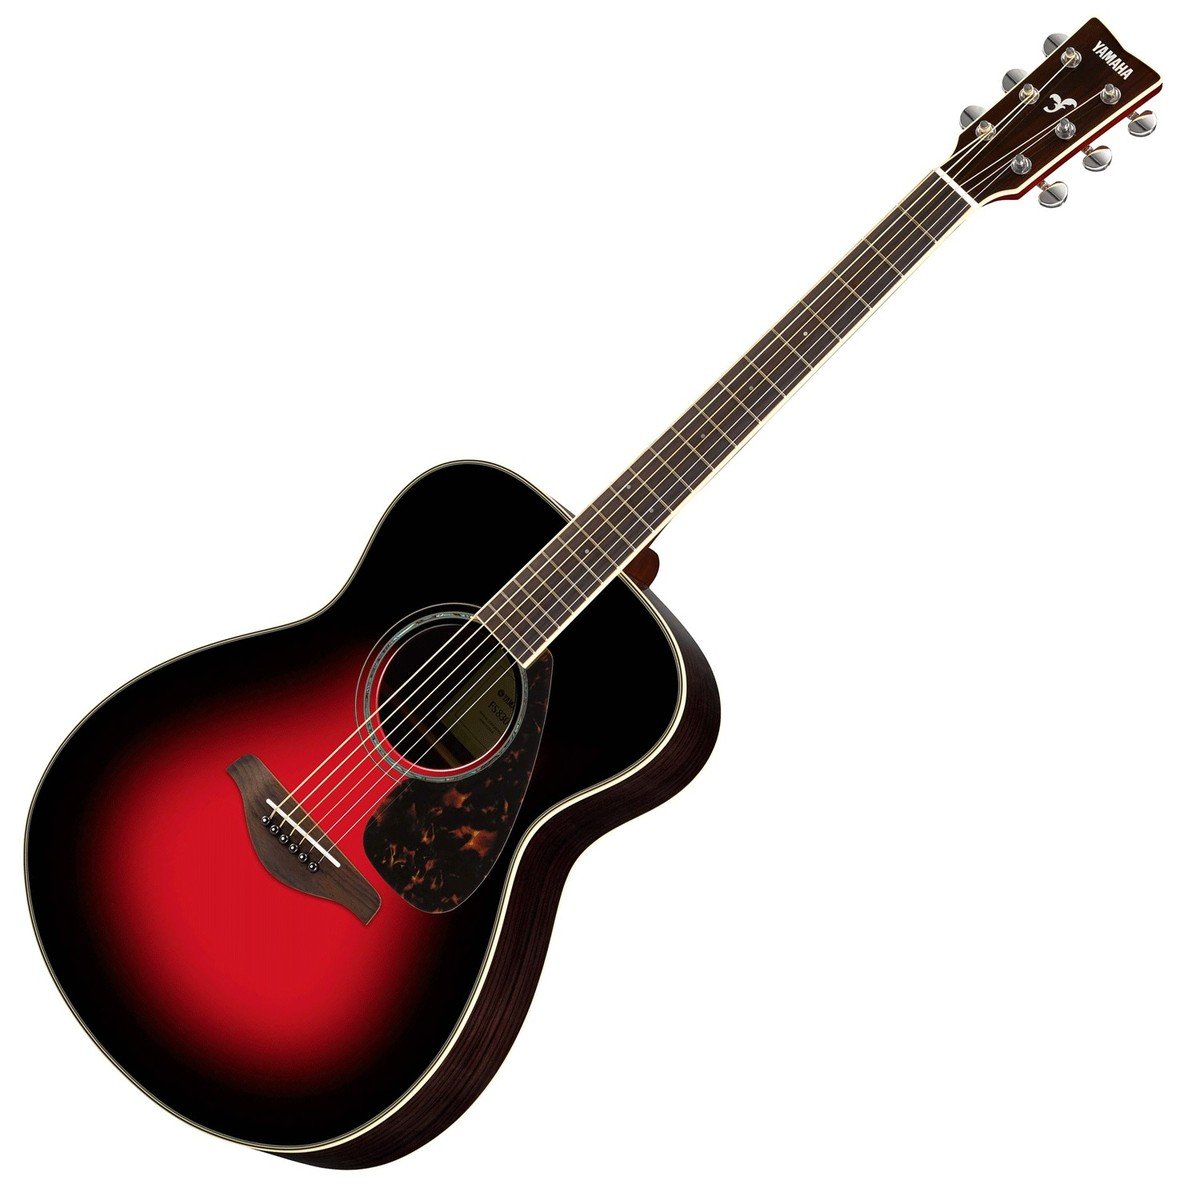 Yamaha fs830 acoustic guitar dusk sun red at for Yamaha acoustic bass guitar